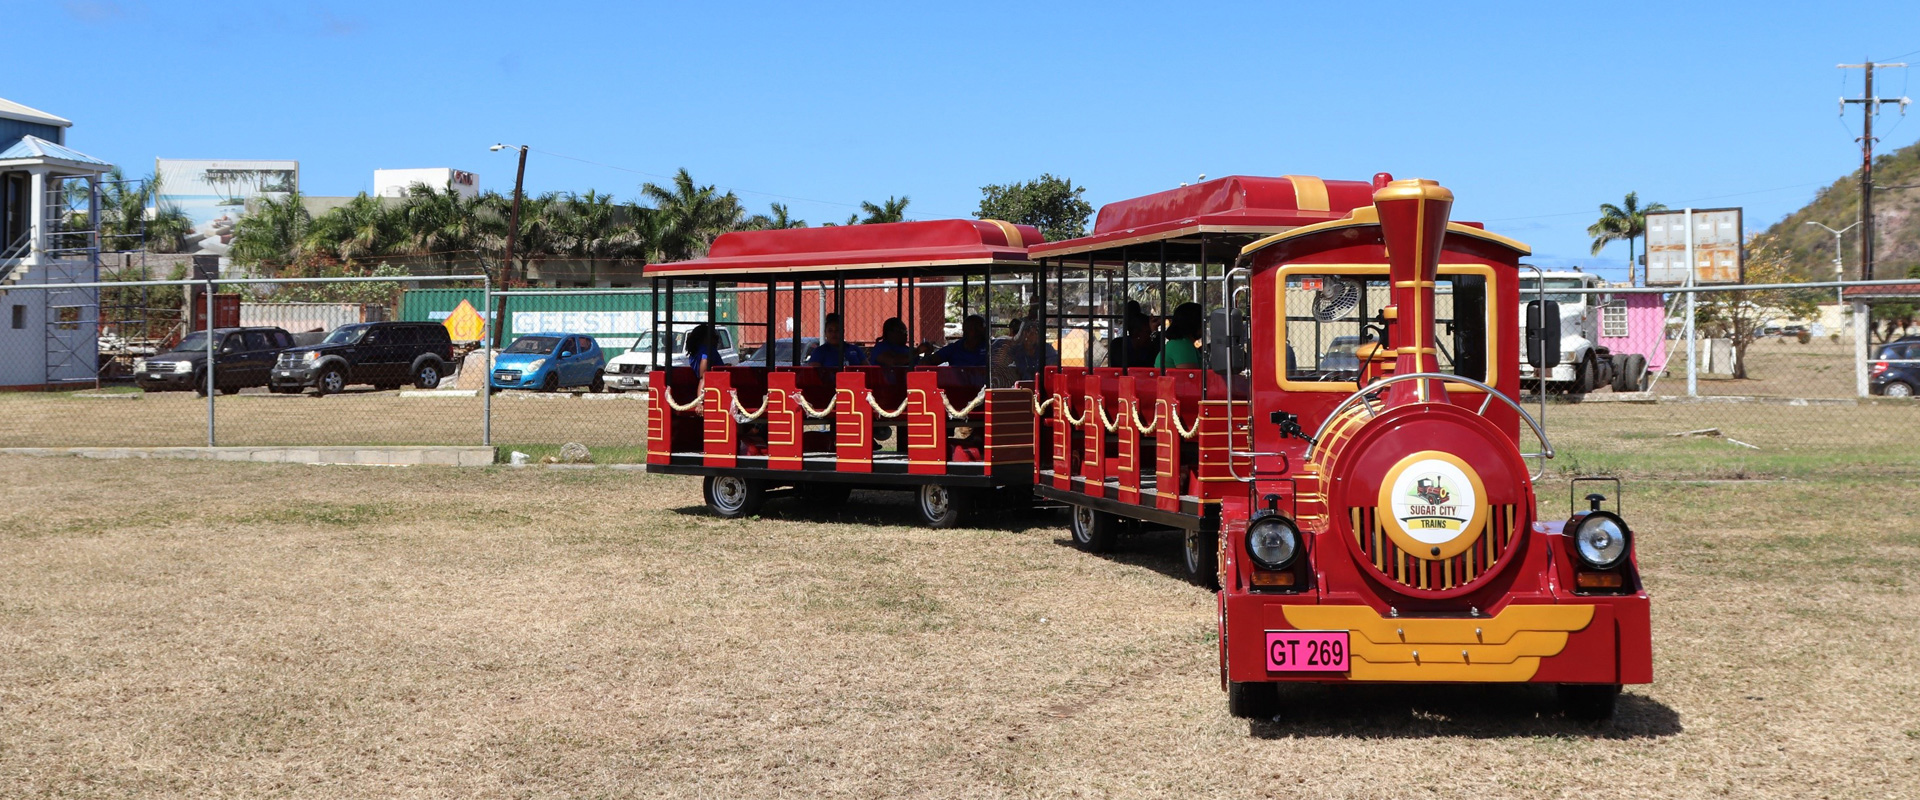 Electric Train Tour in St. Kitts